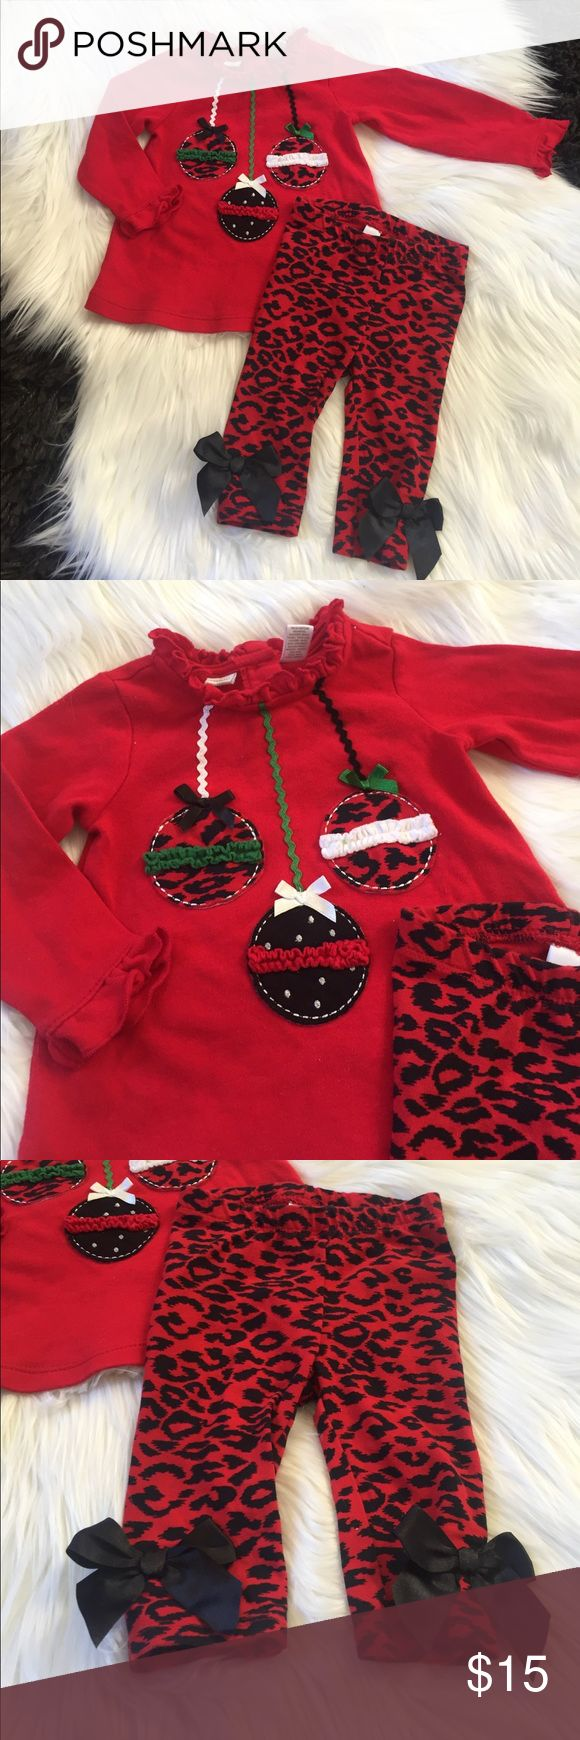 Infant Christmas Outfit First Impressions red long sleeve top with matching red and black animal print legging pants. The shirt has 3 hang ornaments and The pants have a black bow on each ankle. Like new condition, size 3-6 months First Impressions Matching Sets